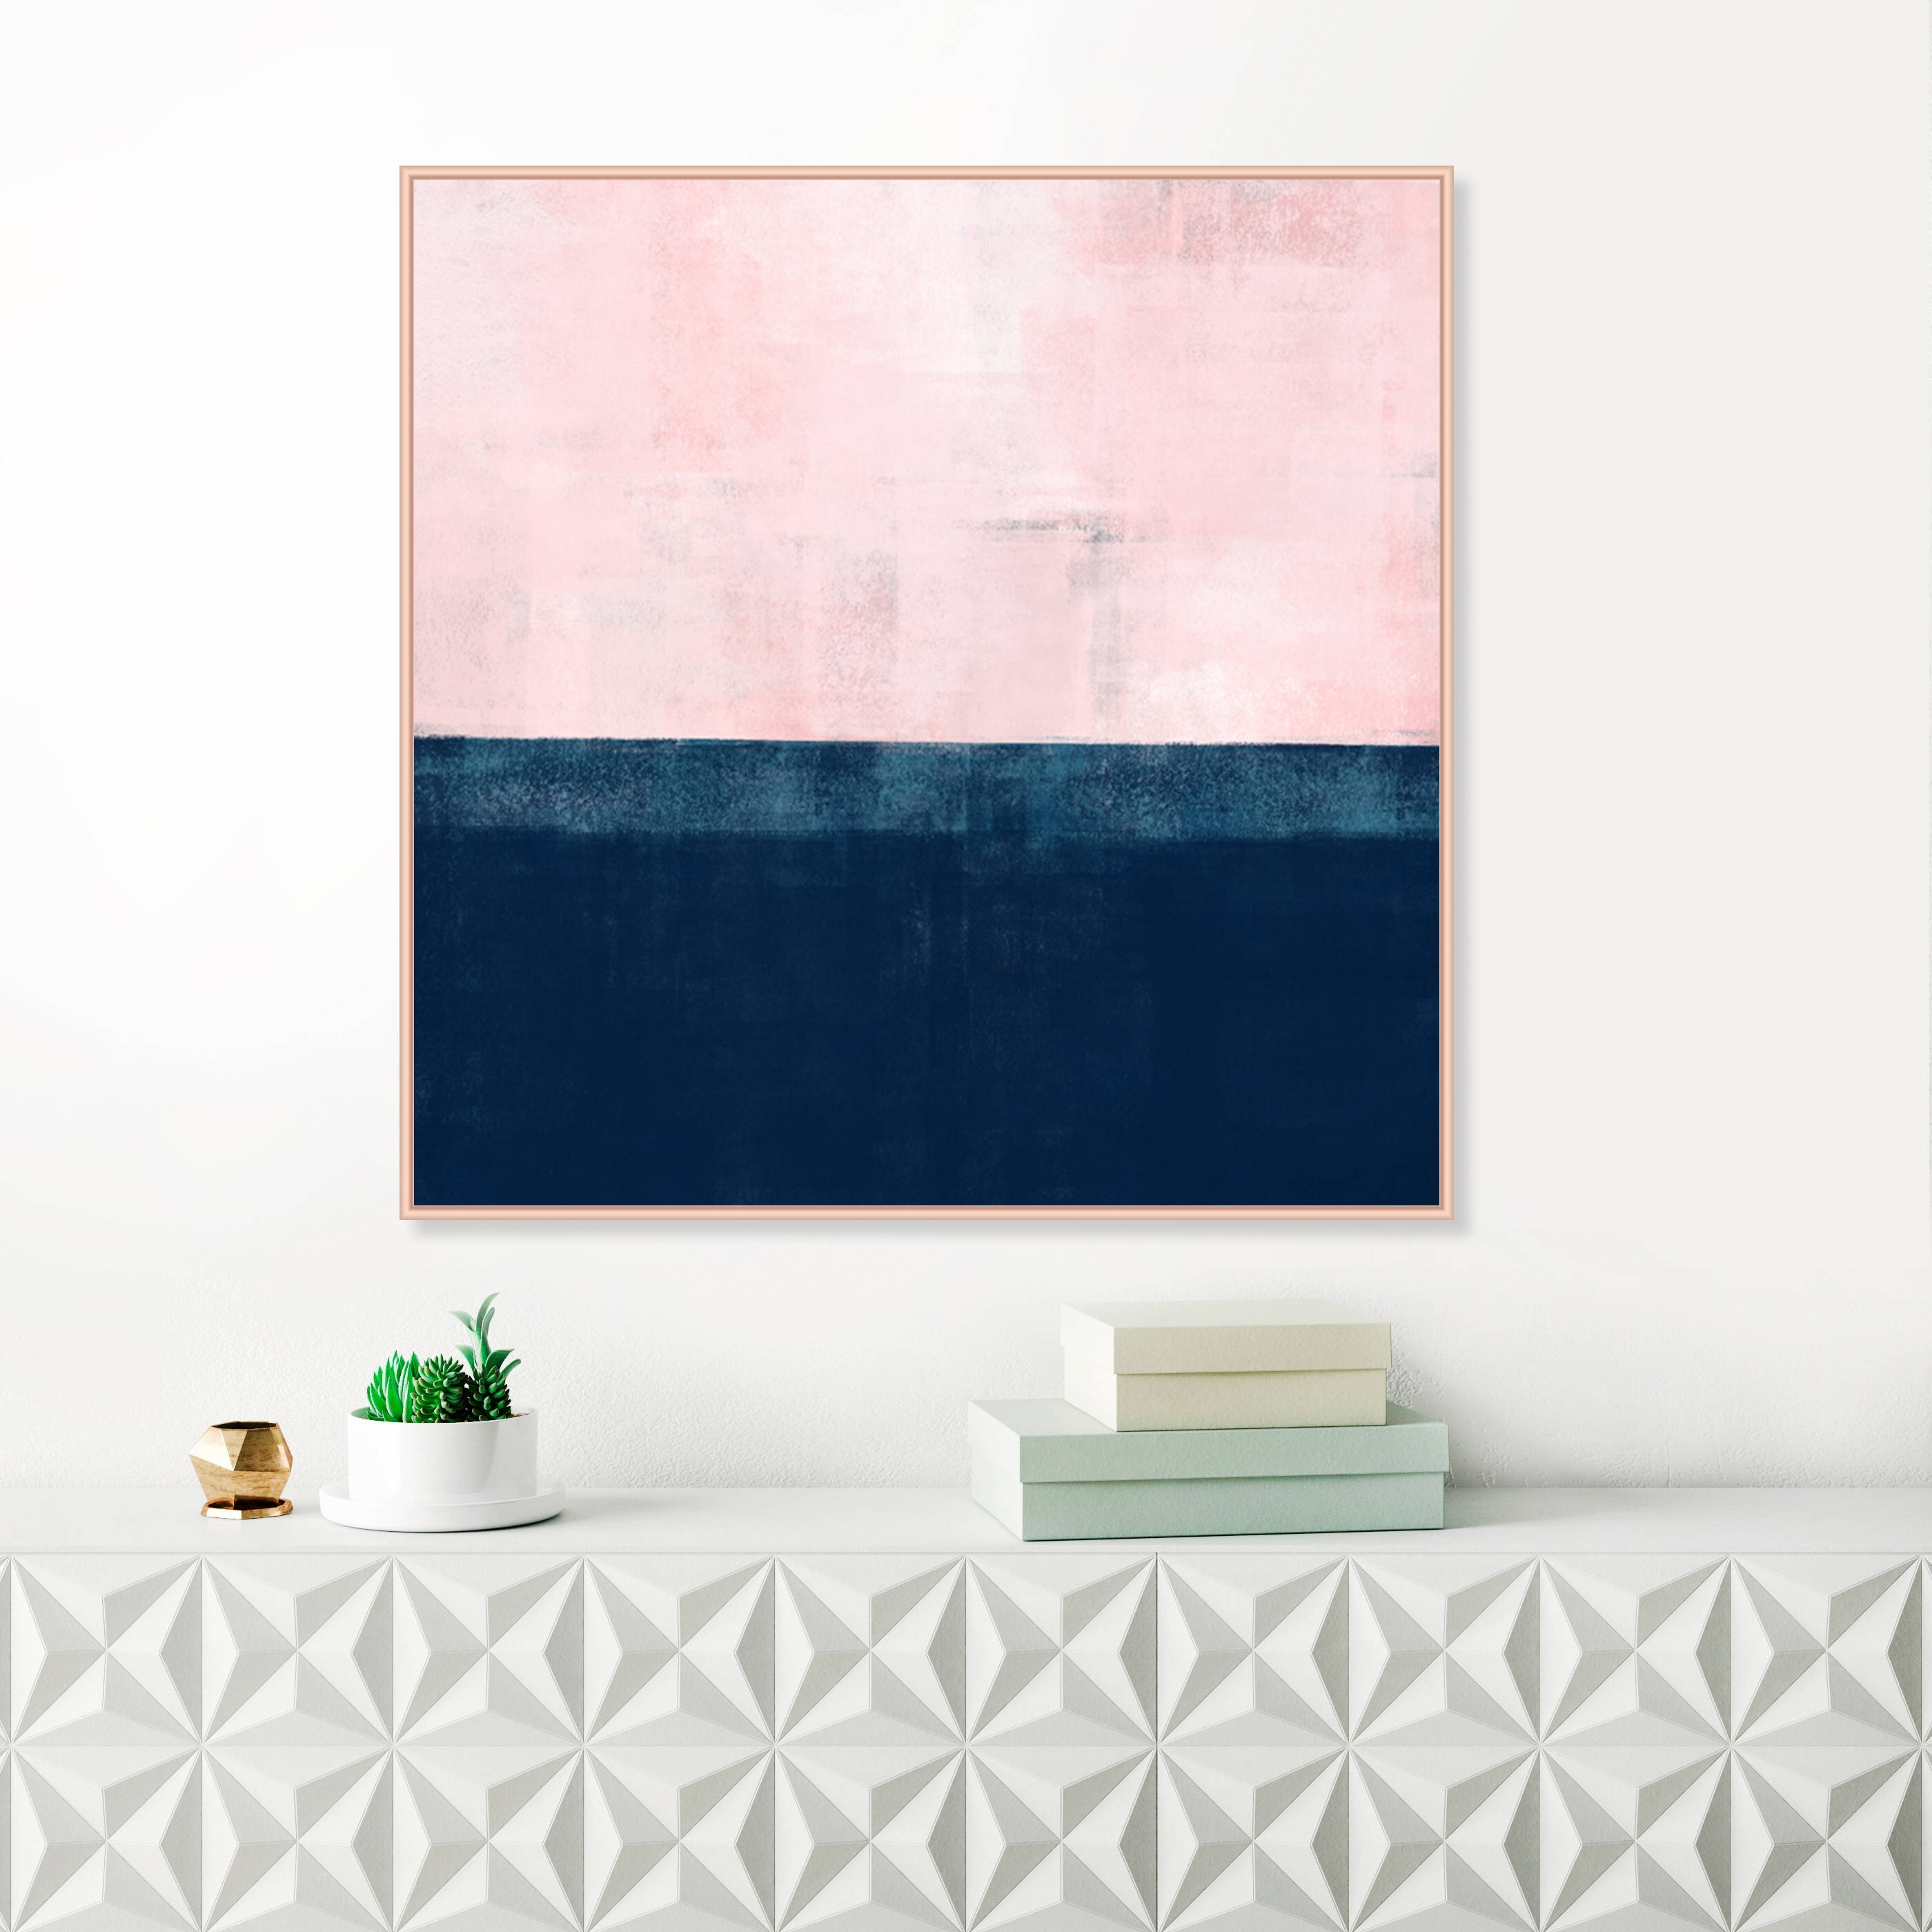 Pink And Navy Blue Abstract Art, Pink Wall Art, Pink Painting In Best And Newest Pink Abstract Wall Art (Gallery 10 of 20)